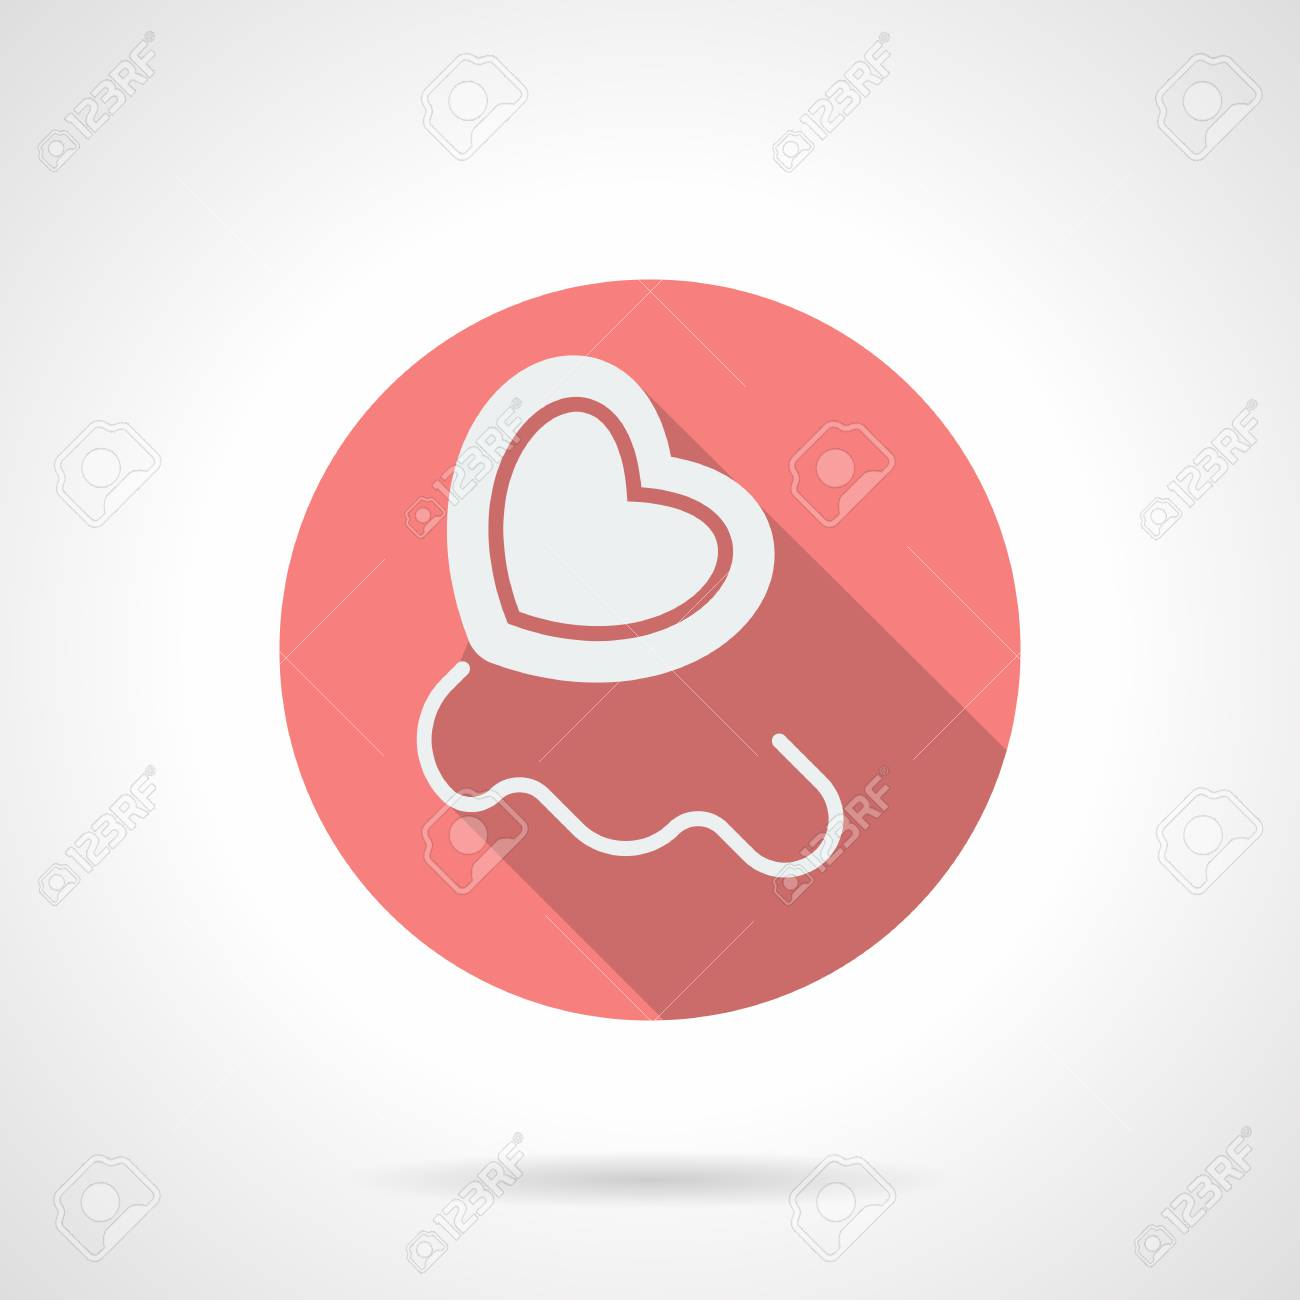 White Silhouette Heart Balloon With Rope. Love Party Decoration, Romantic  Gift. Round Pink